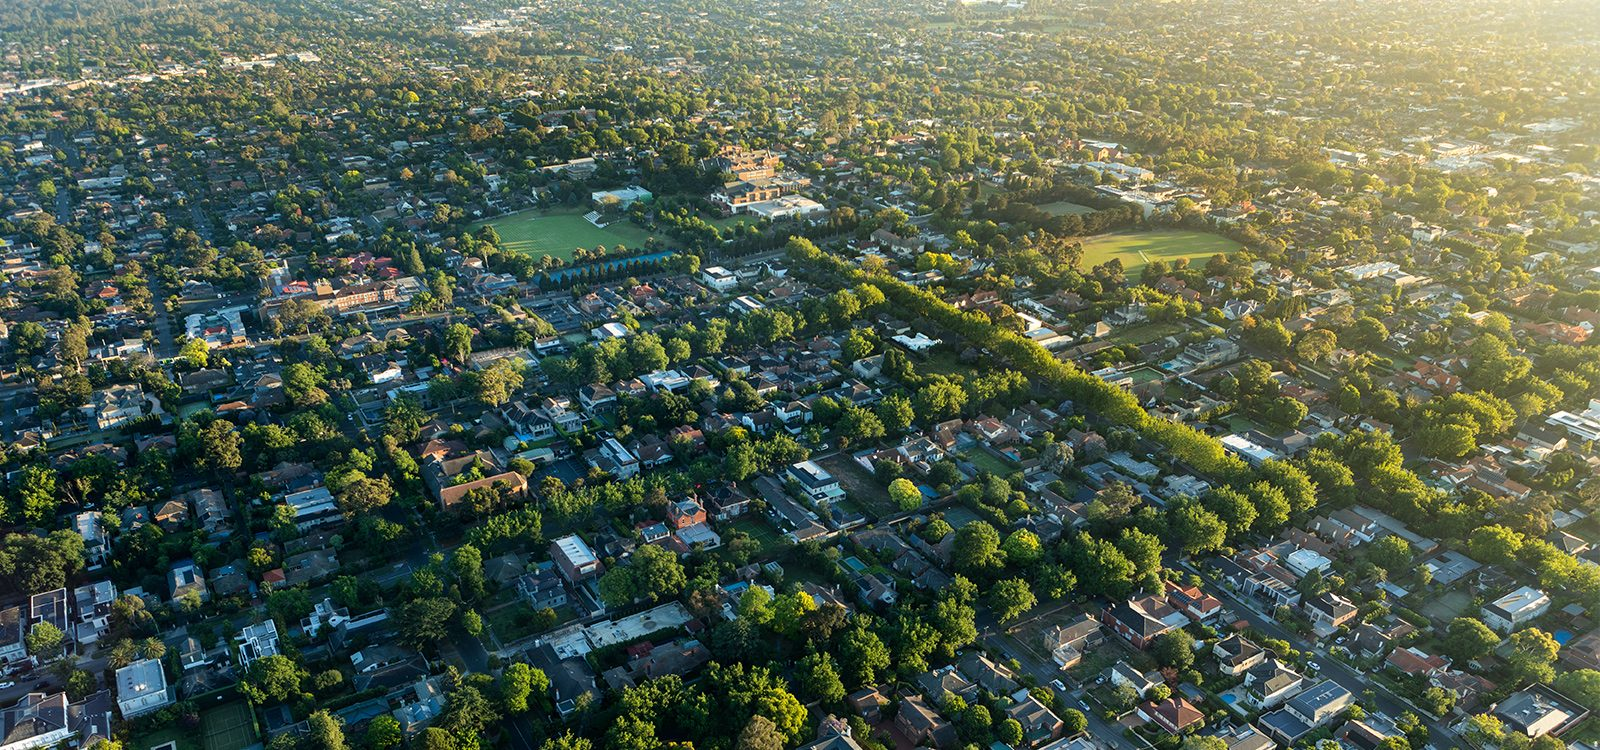 Property Insurance Affordability: Challenges and Potential Solutions